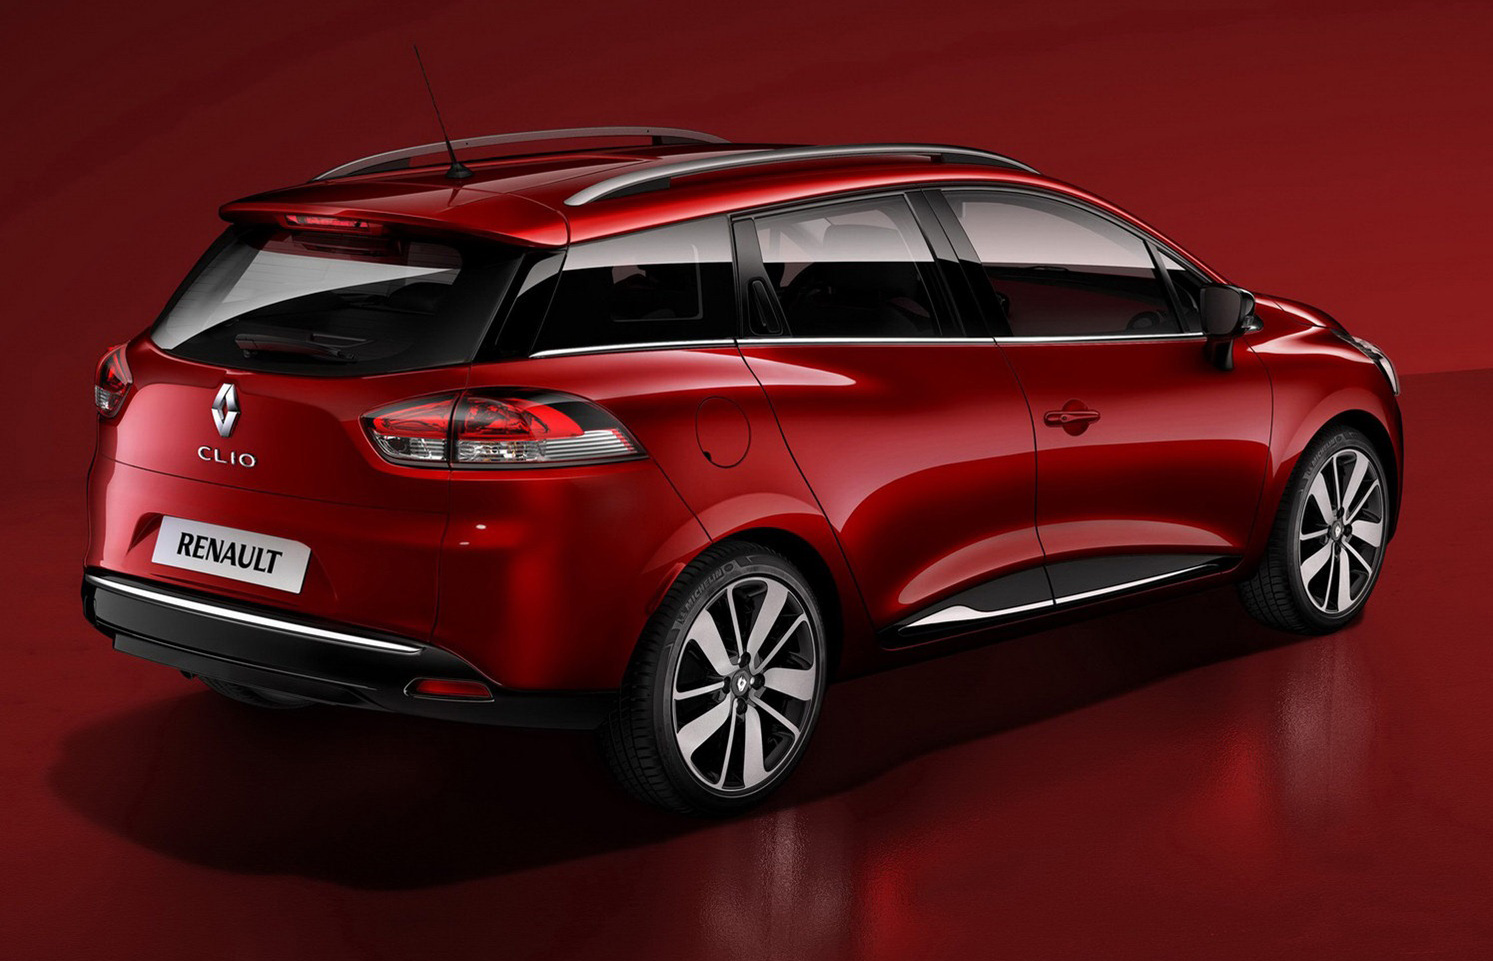 Renault Clio Estate Wagon Revealed At Paris Motor Show High Resolution Image Desktop Backgrounds